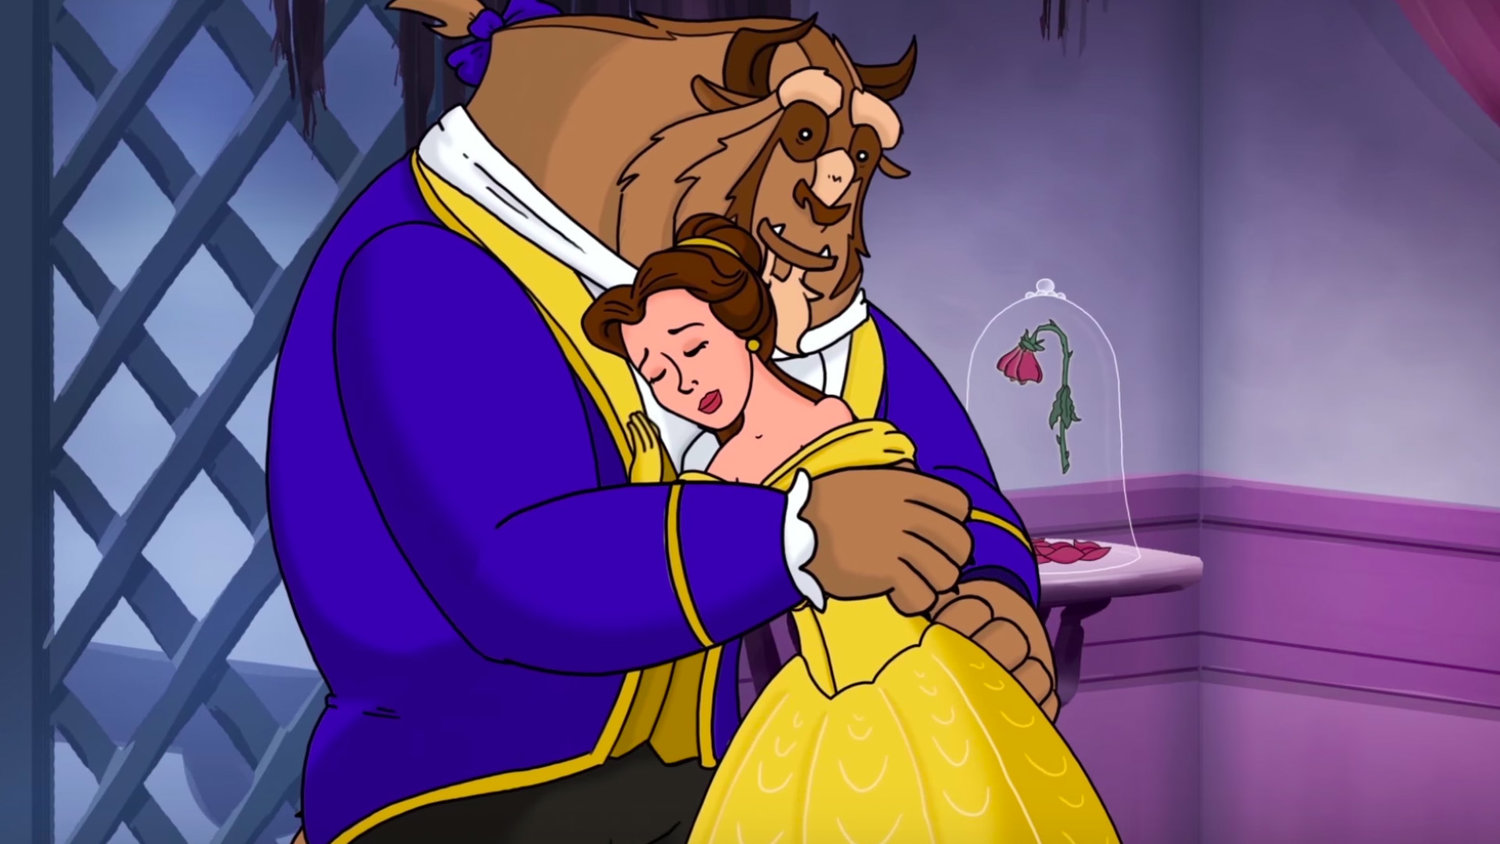 Watch: How BEAUTY AND THE BEAST (1991) Should Have Ended